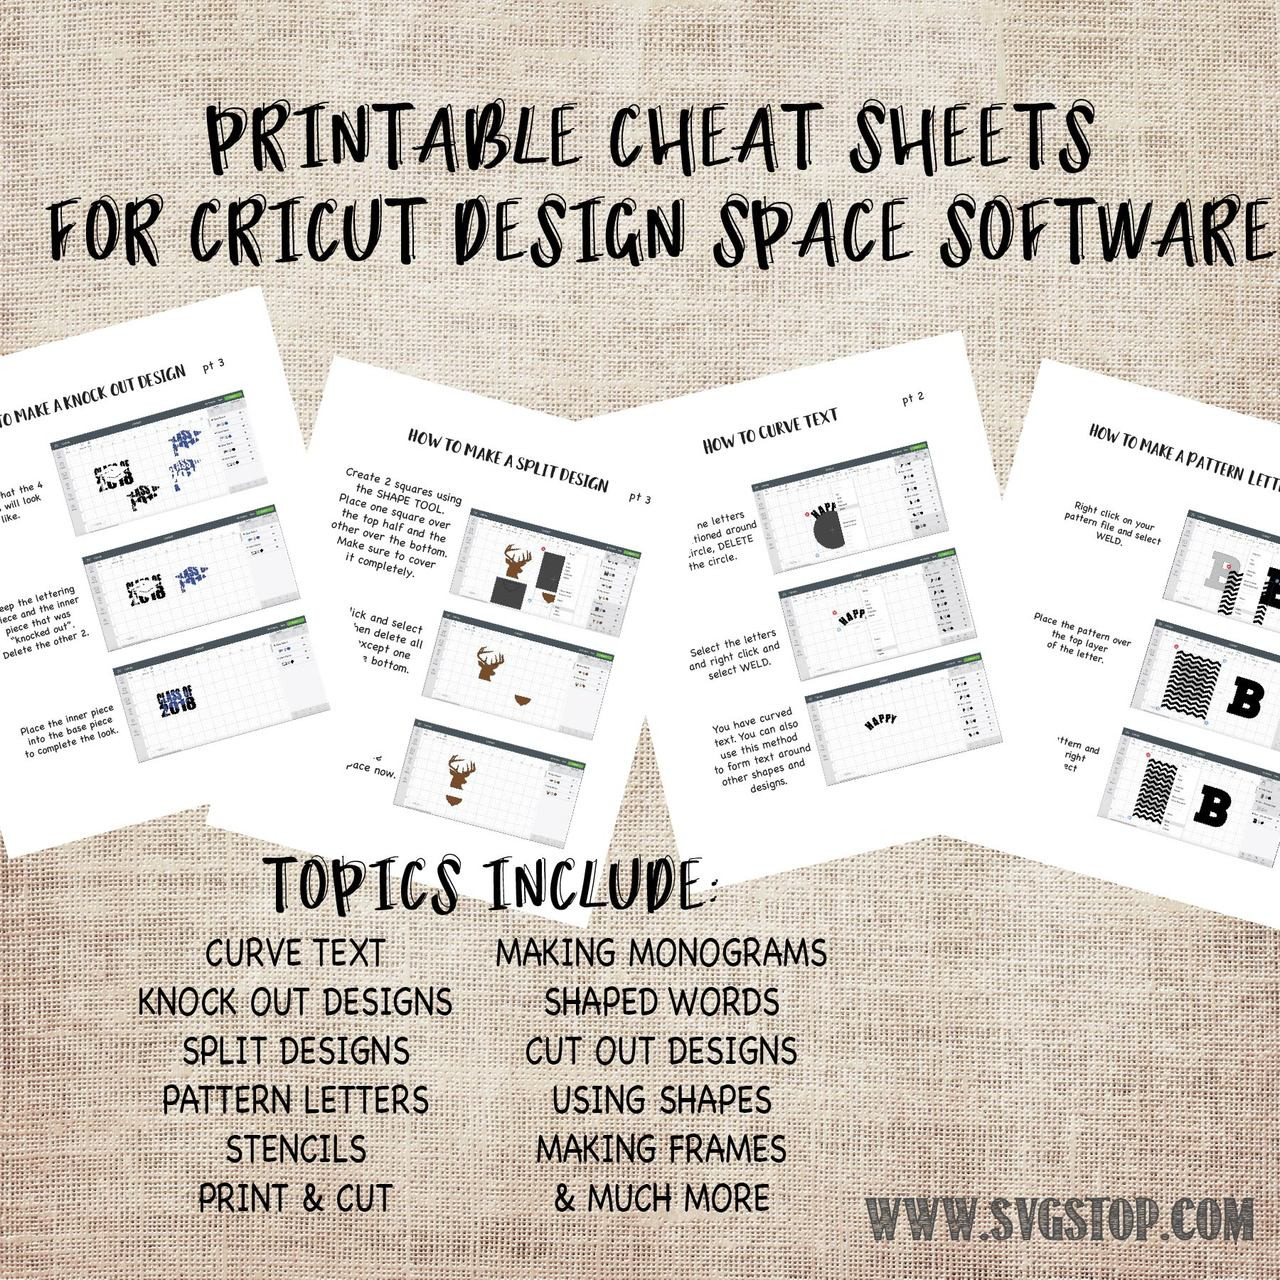 graphic about Printable Cheat Sheet named Printable Cheat Sheets for Cricut Layout Room - Newcomers Advisor Towards Developing Lower Documents